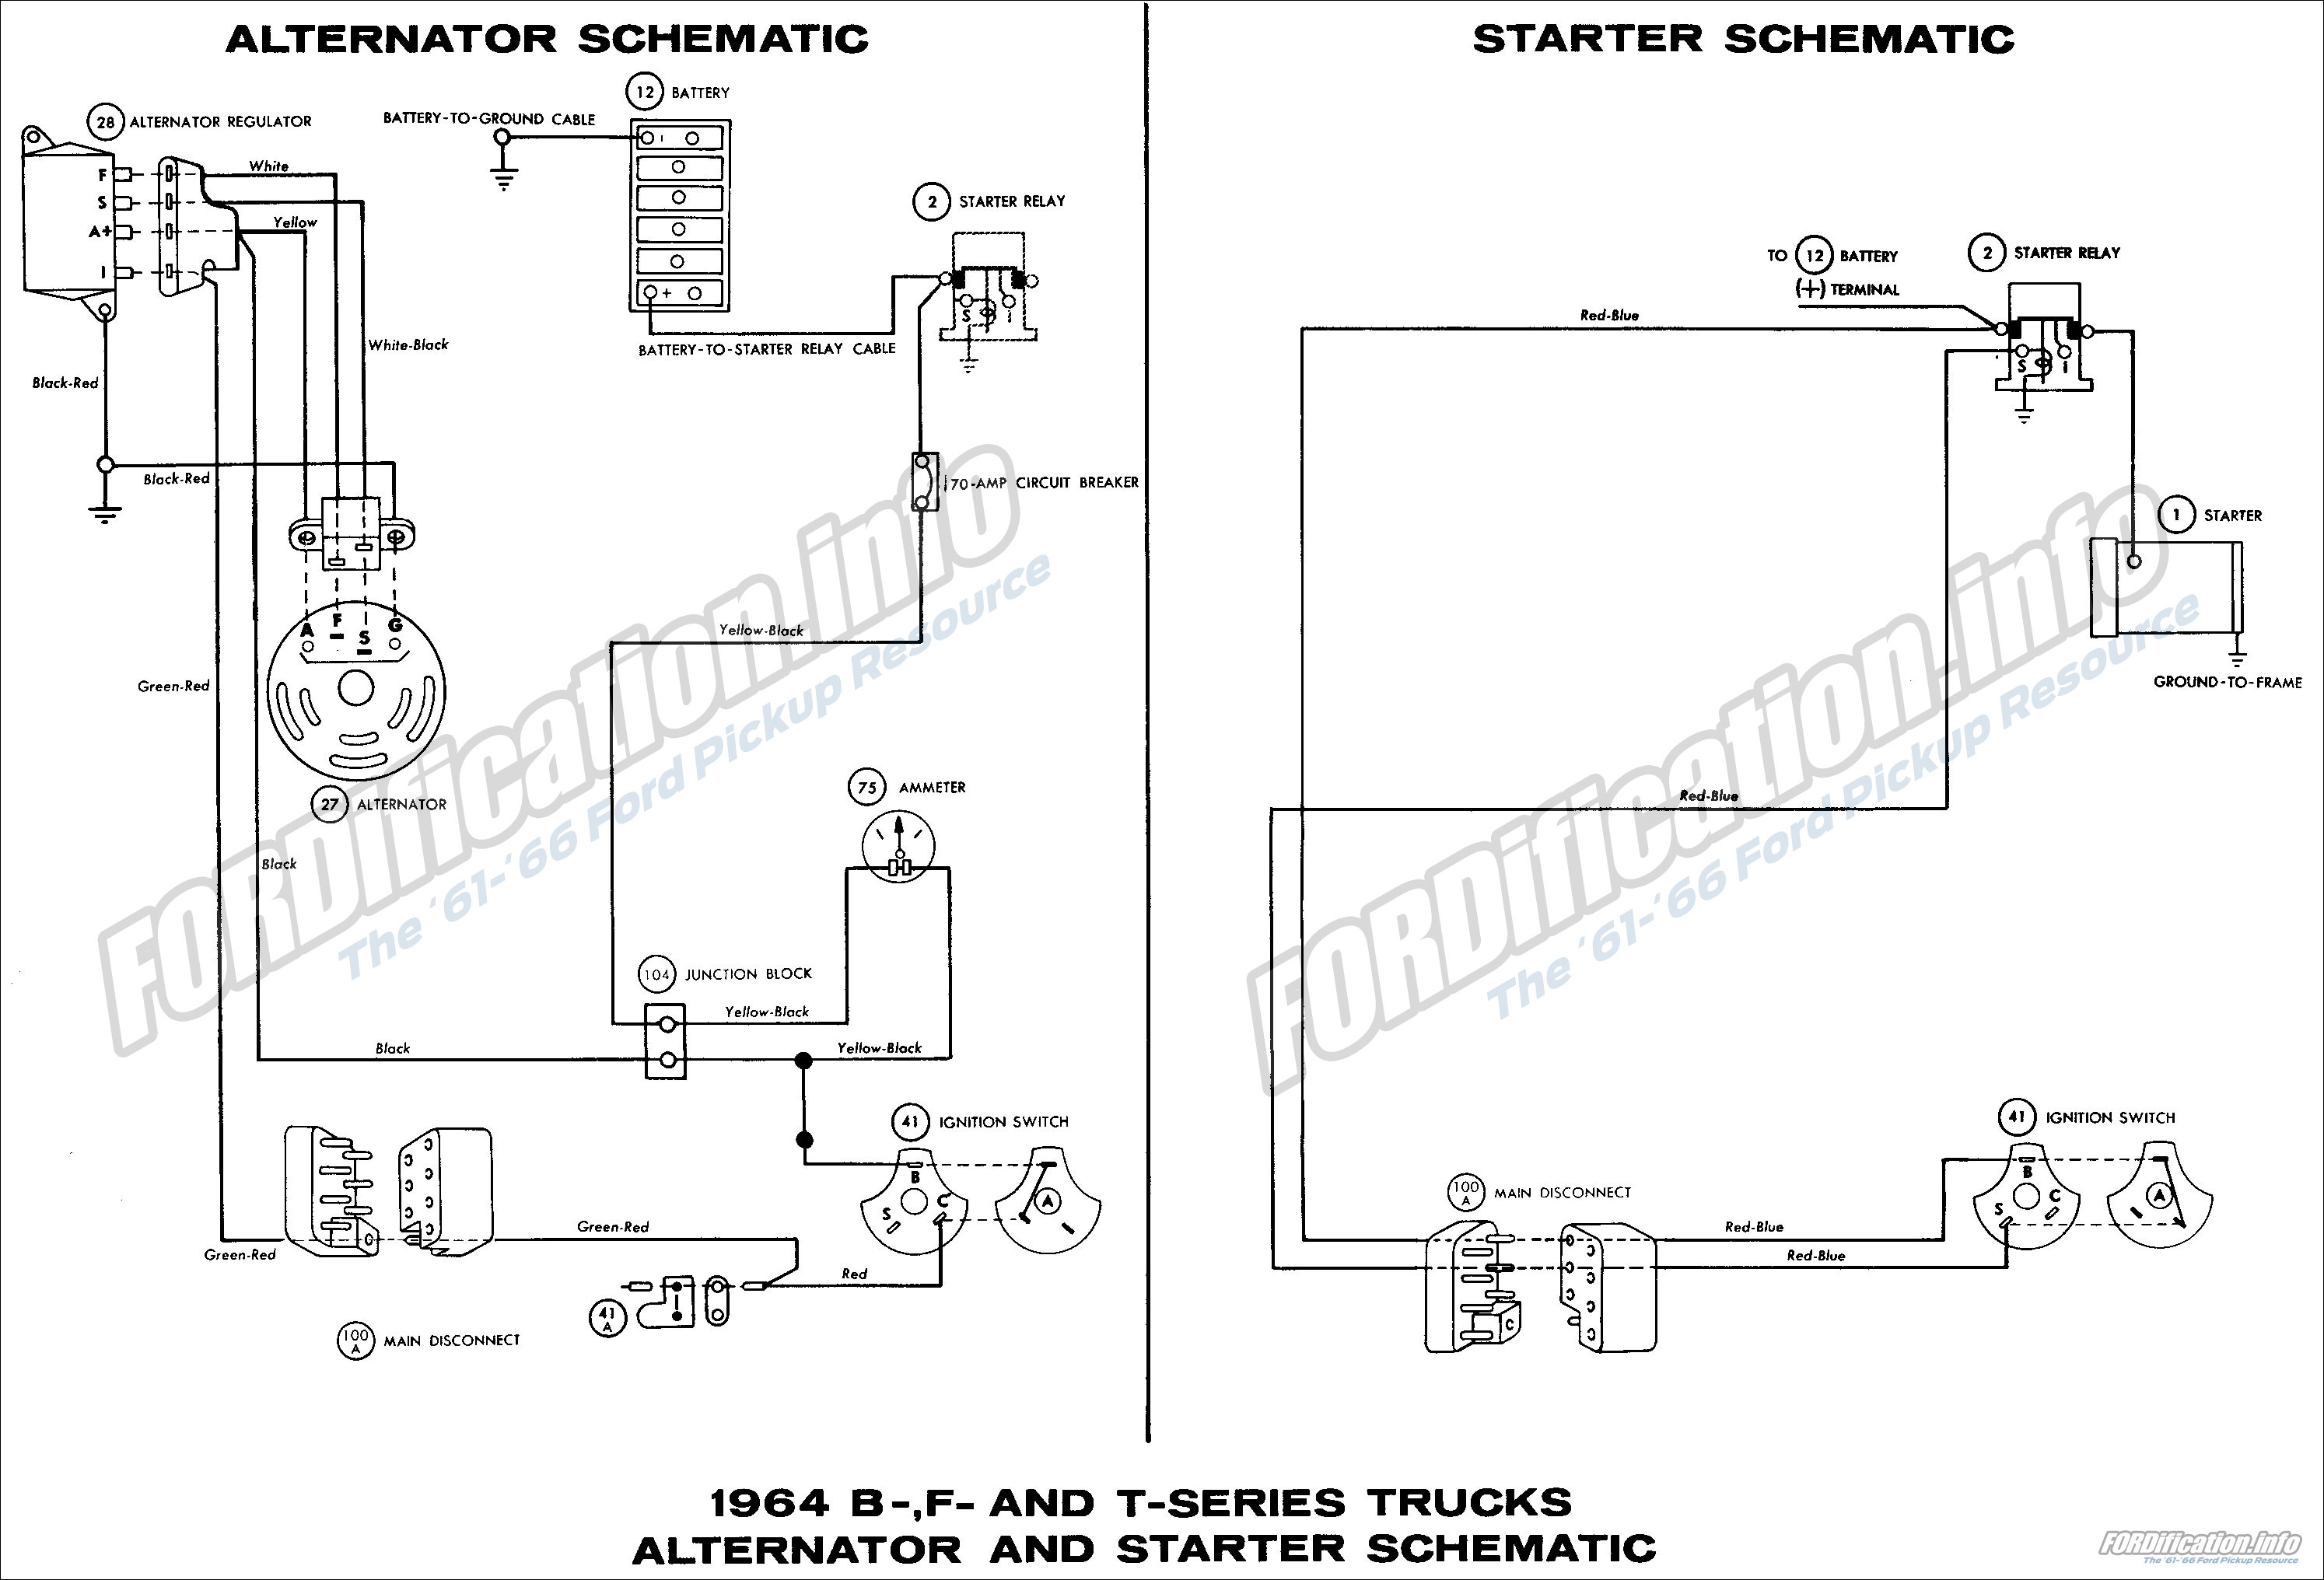 1964 Ford Truck Wiring Diagrams - FORDification.info - The '61-'66 Ford  Pickup ResourceFORDification.info